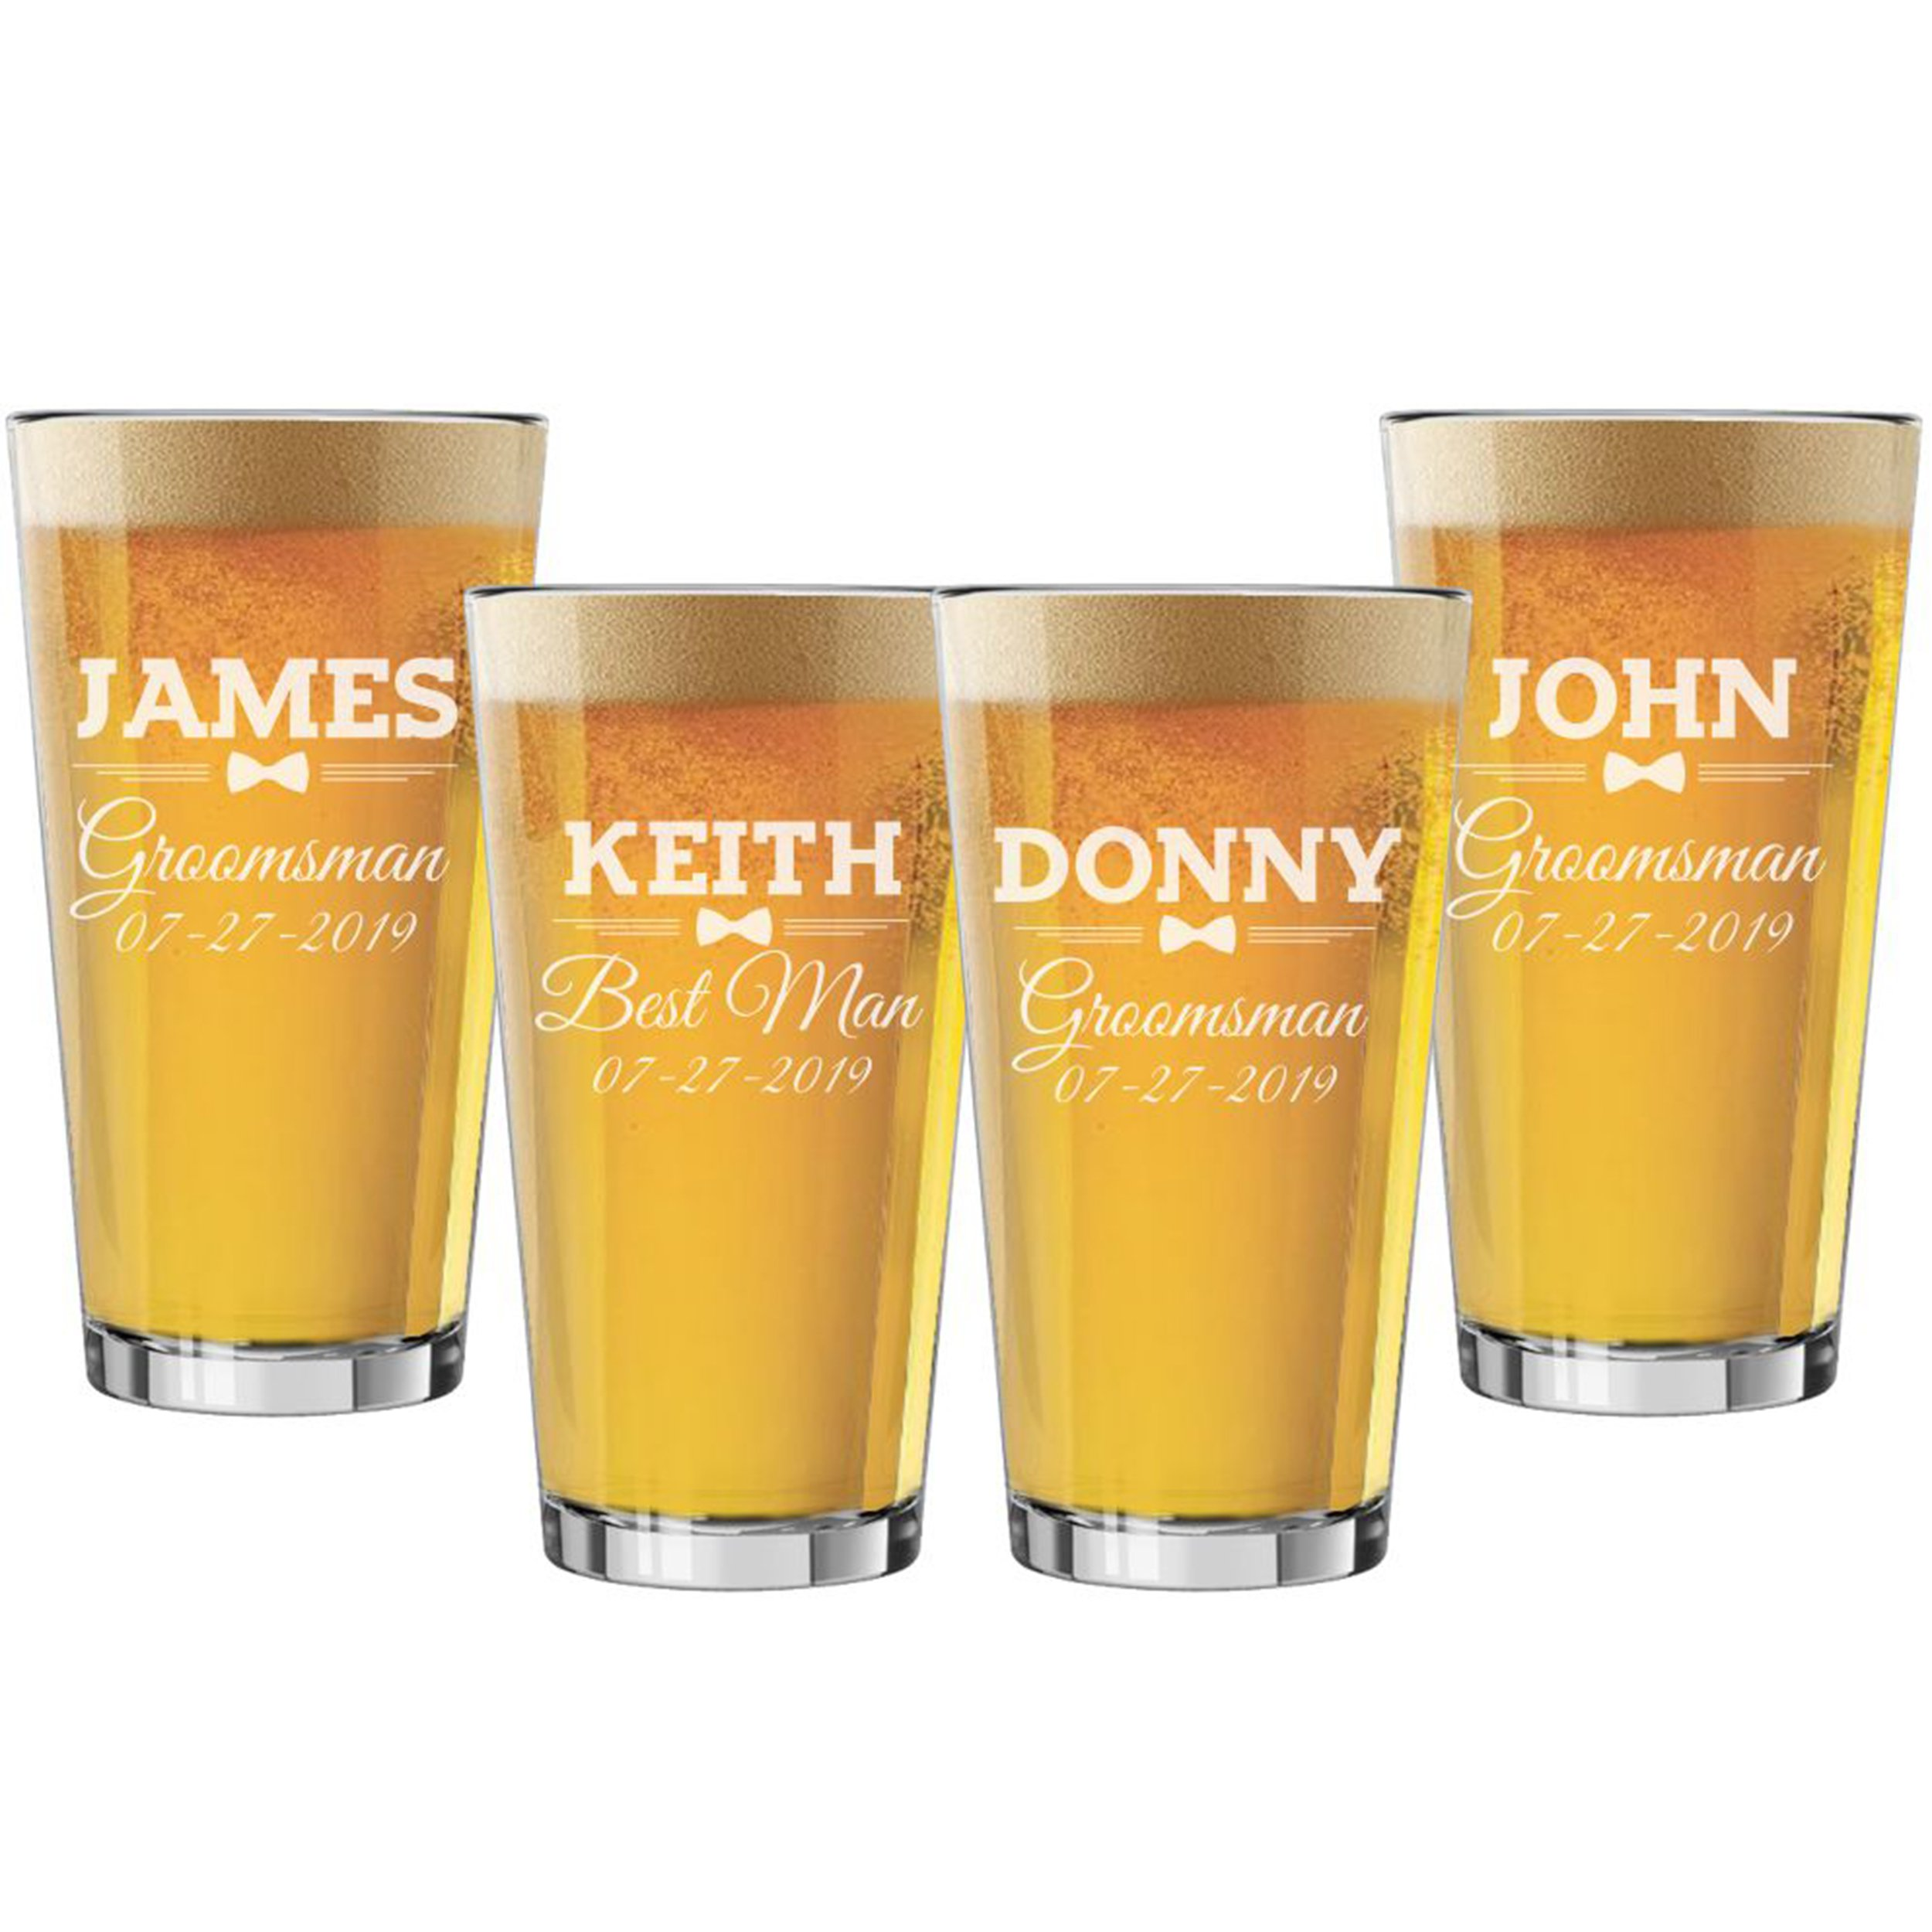 Set of 3, Set of 5, Set of 7 and more Groomsman Wedding Party 16 oz Pint Beer Glasses - Custom Engraved and Personalized for Free - Bow Tie Style (4) by The Wedding Party Store (Image #1)